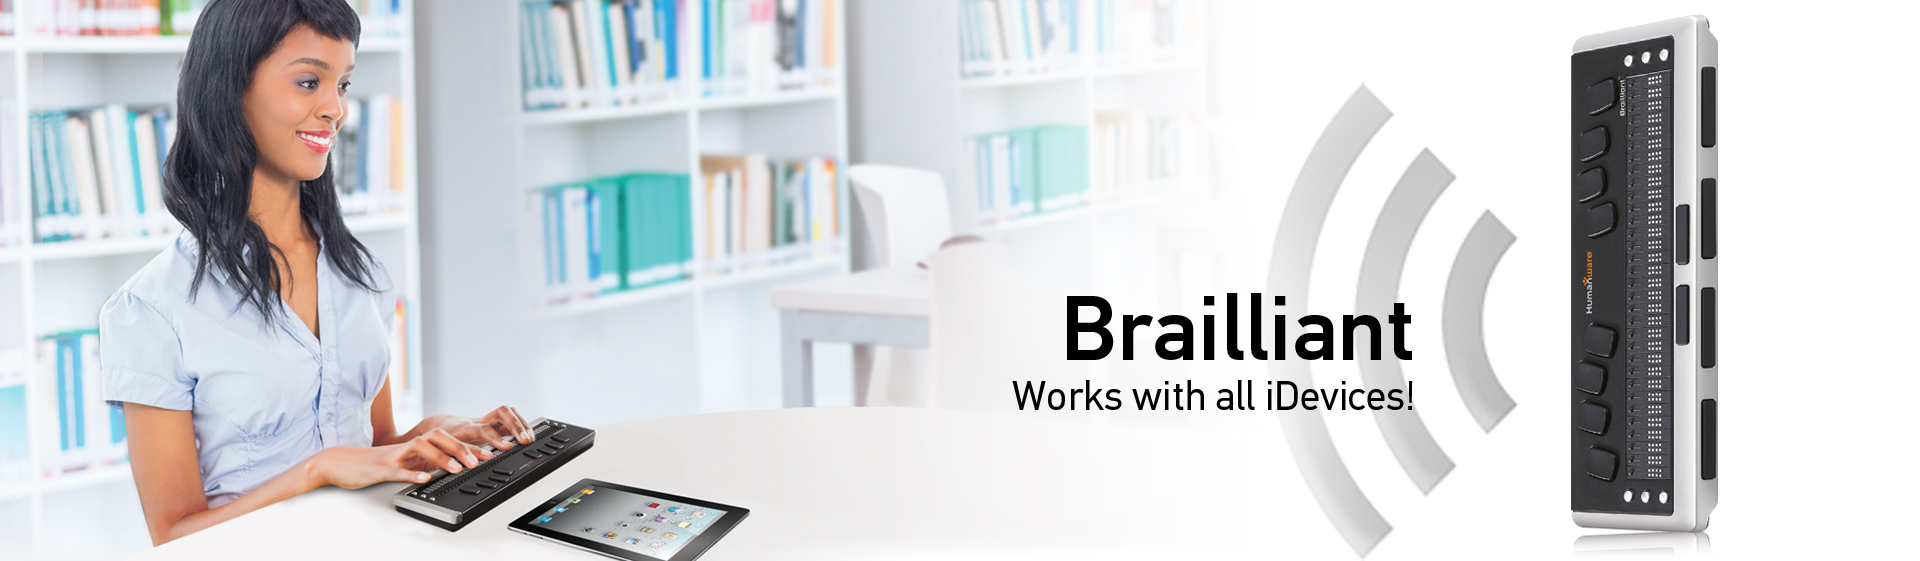 Brailliant braille display - Works with all iDevices